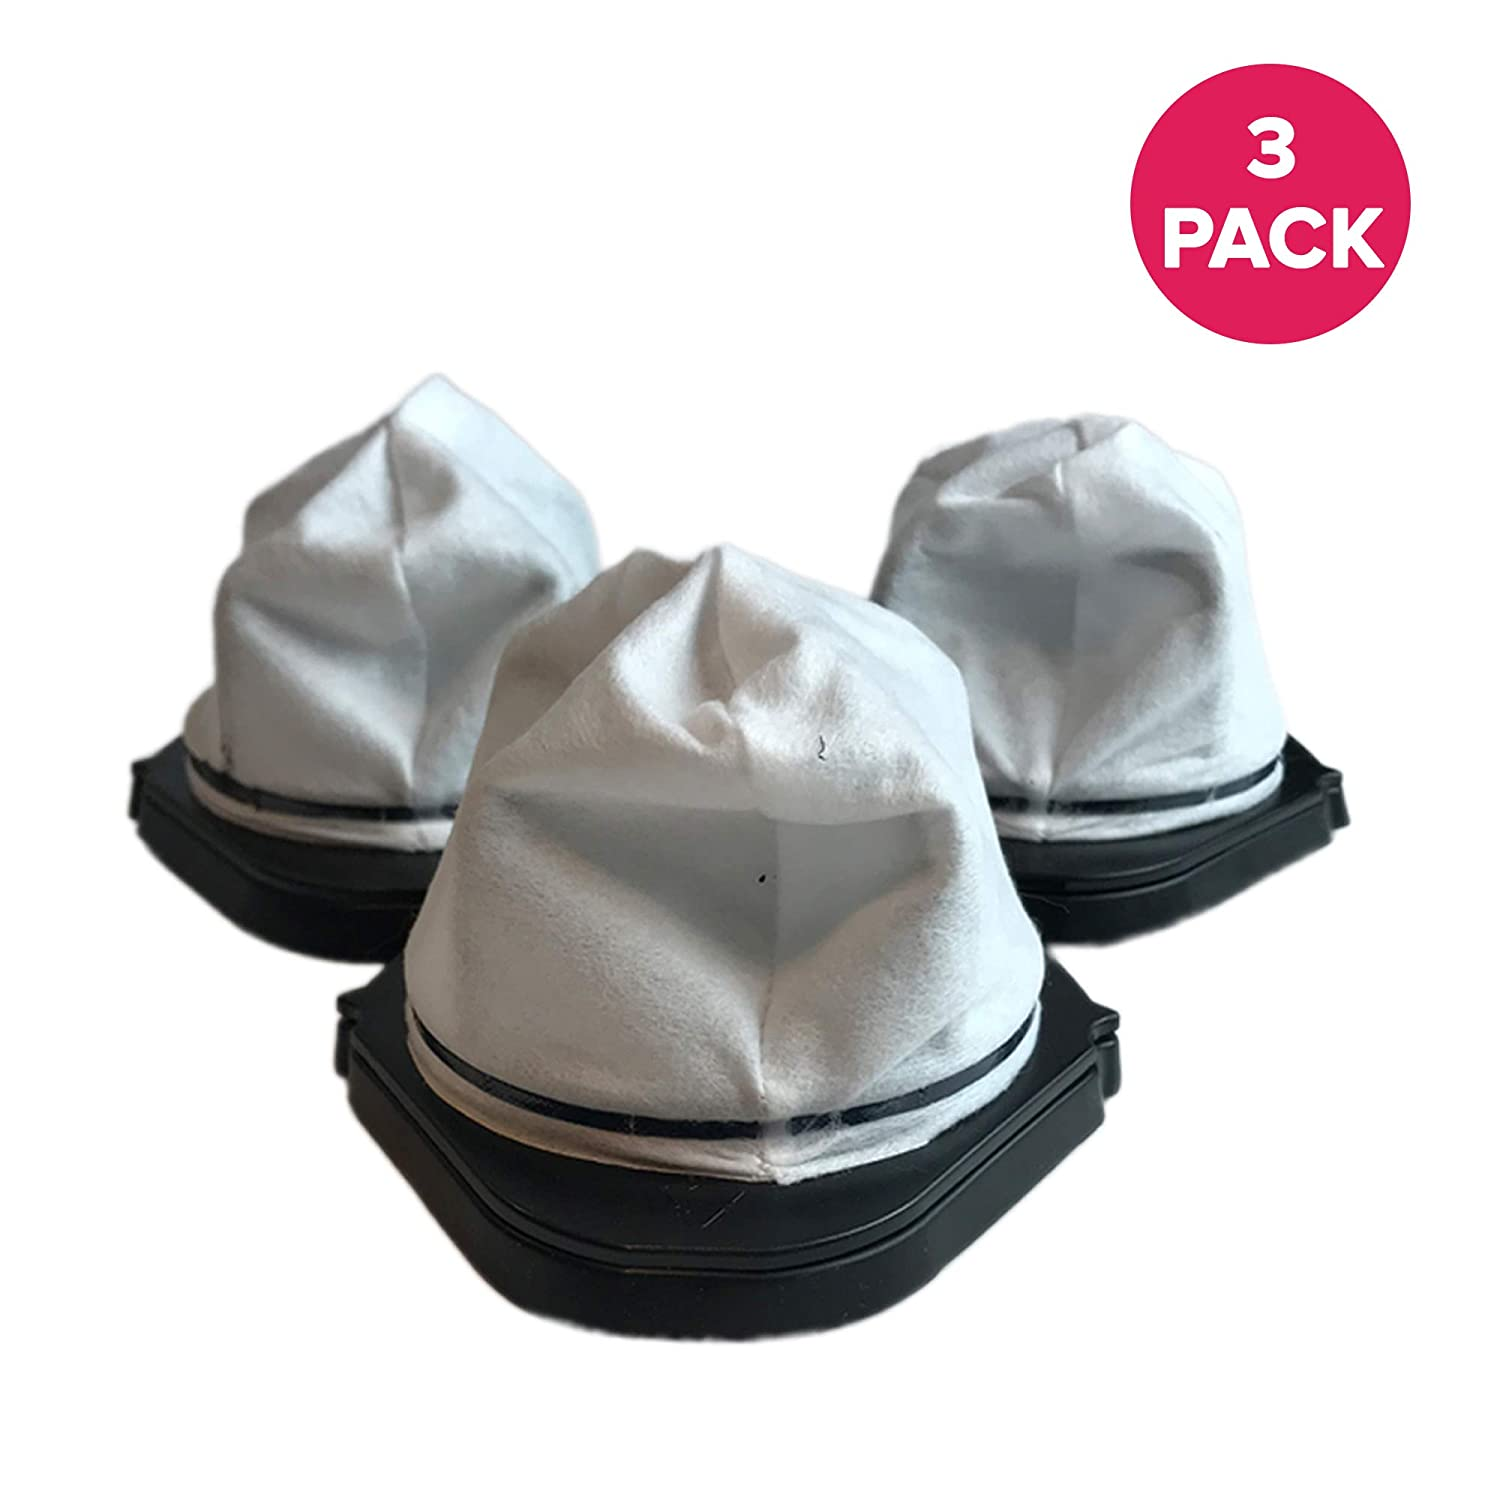 Crucial Vacuum3-Piece Dust Cup Filters for Shark Hand Vac Models